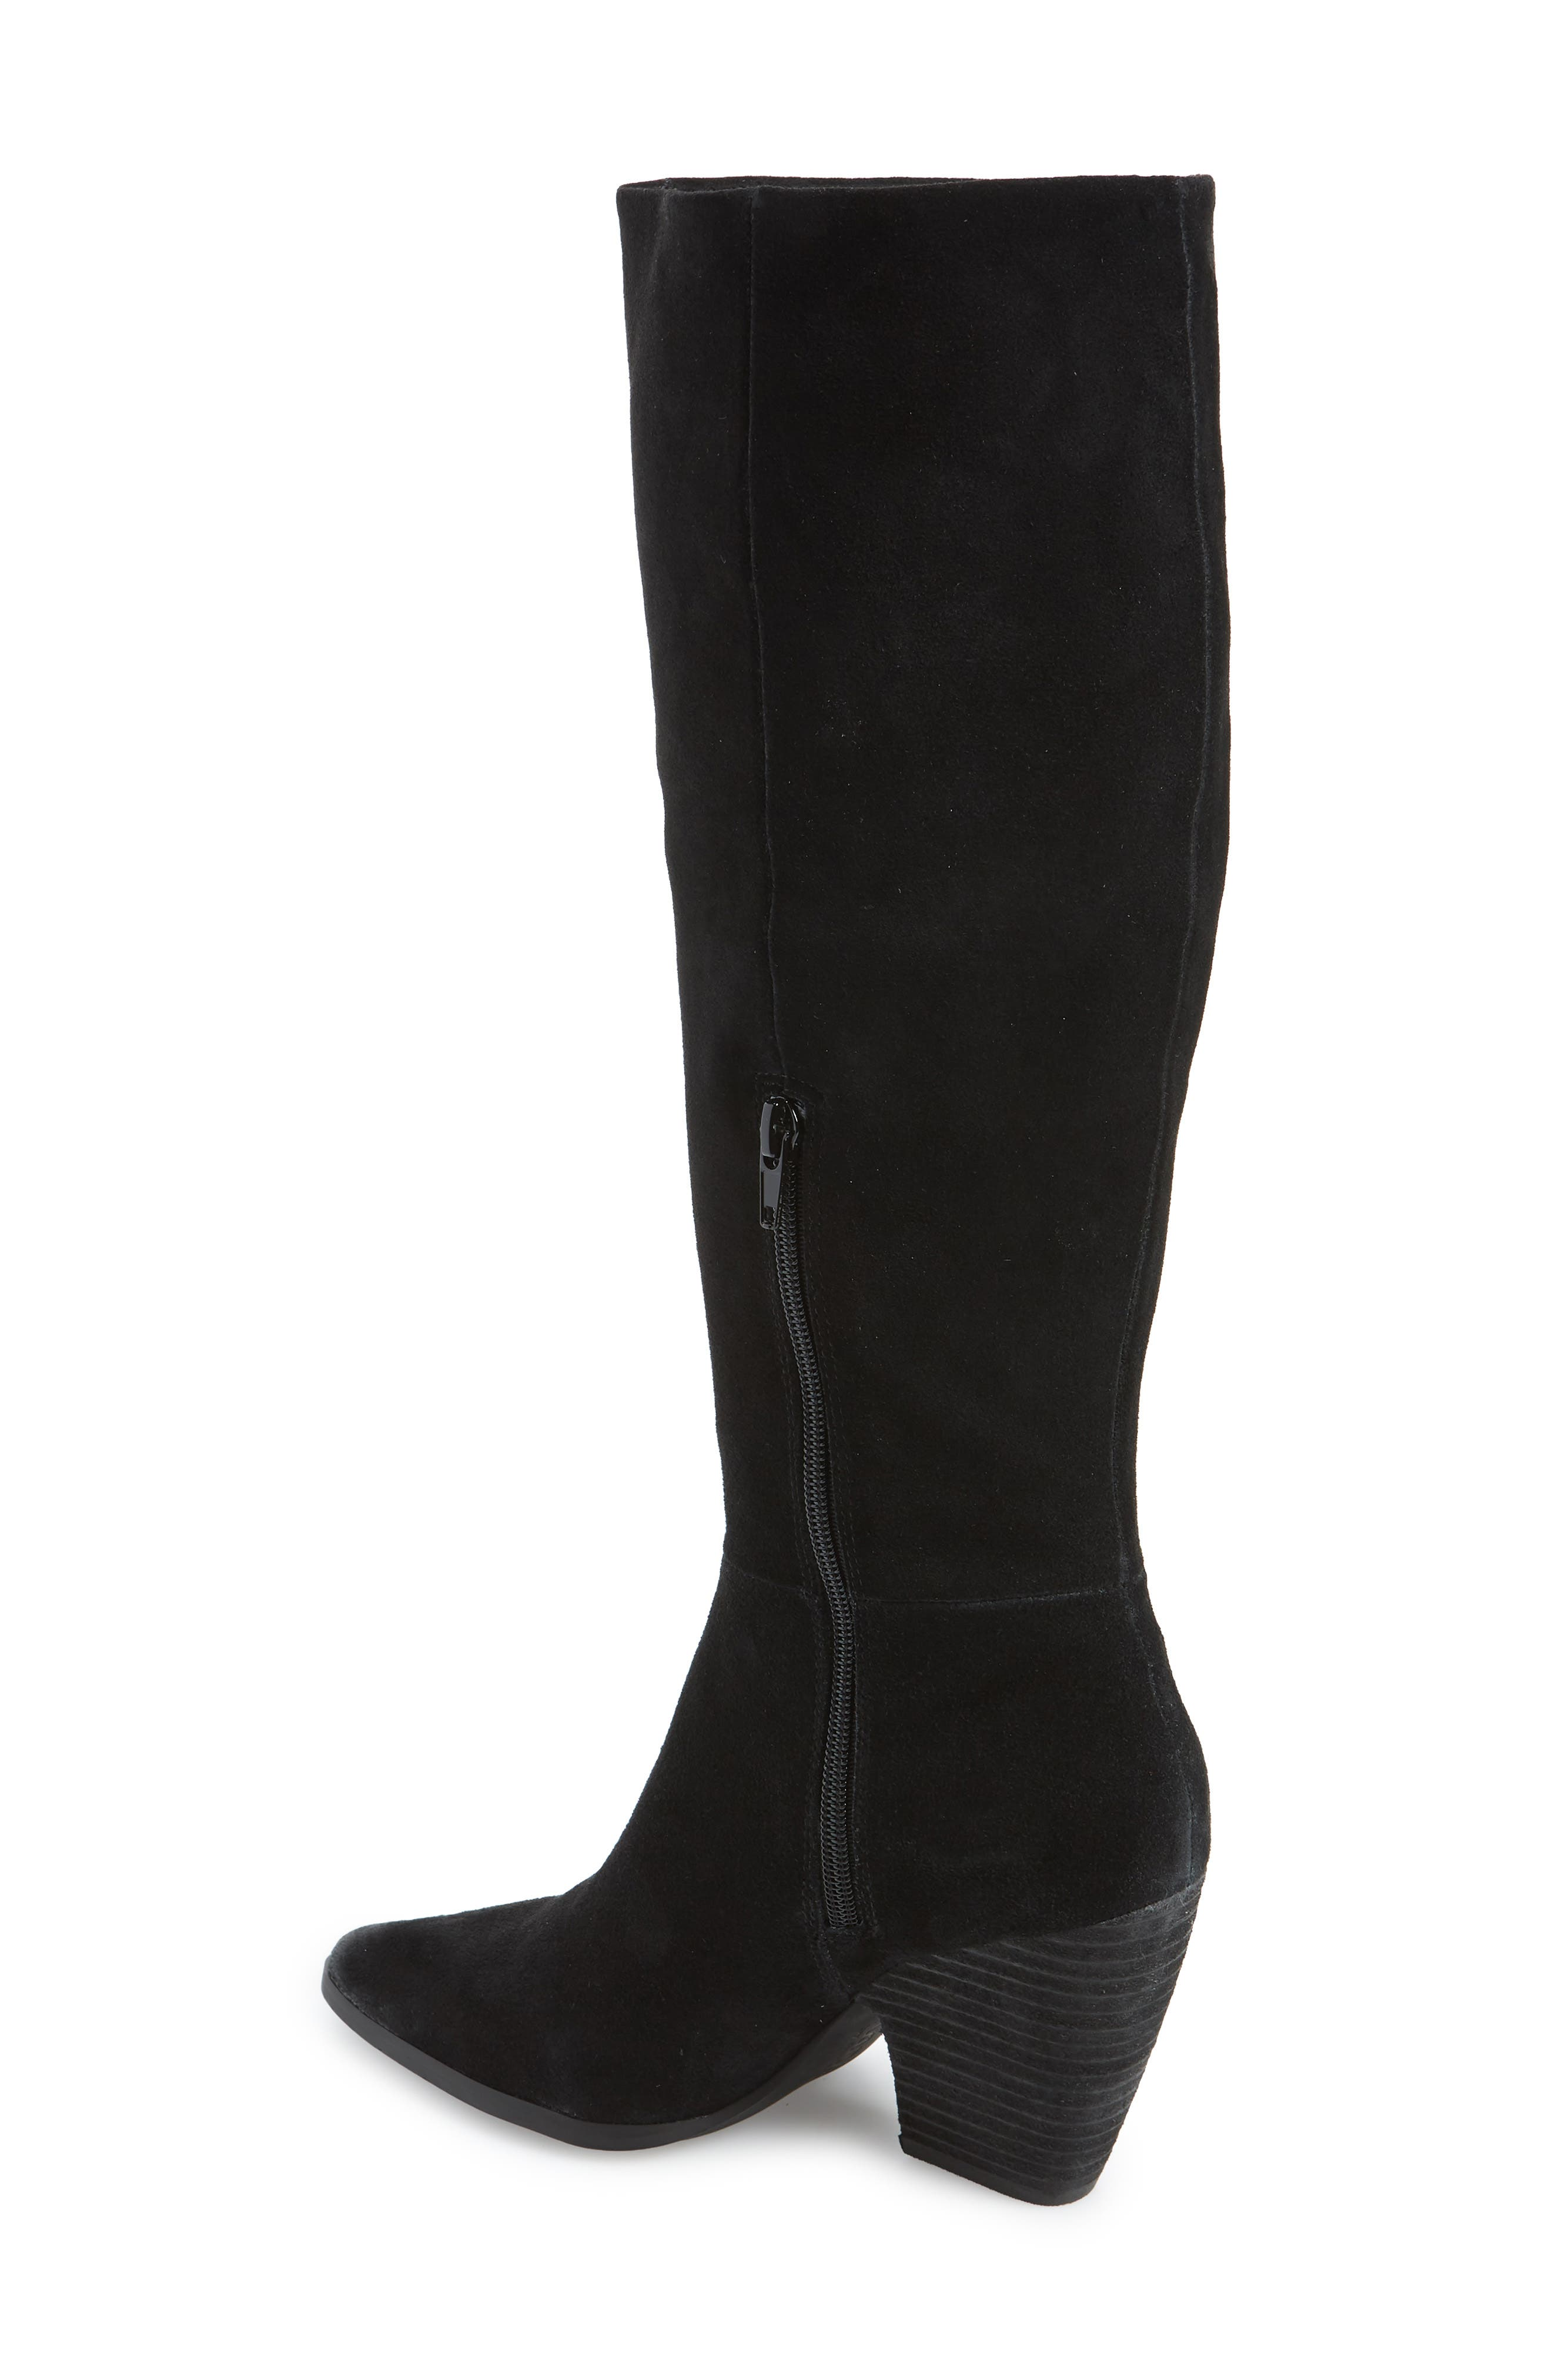 Nyles Knee High Boot,                             Alternate thumbnail 2, color,                             BLACK SUEDE